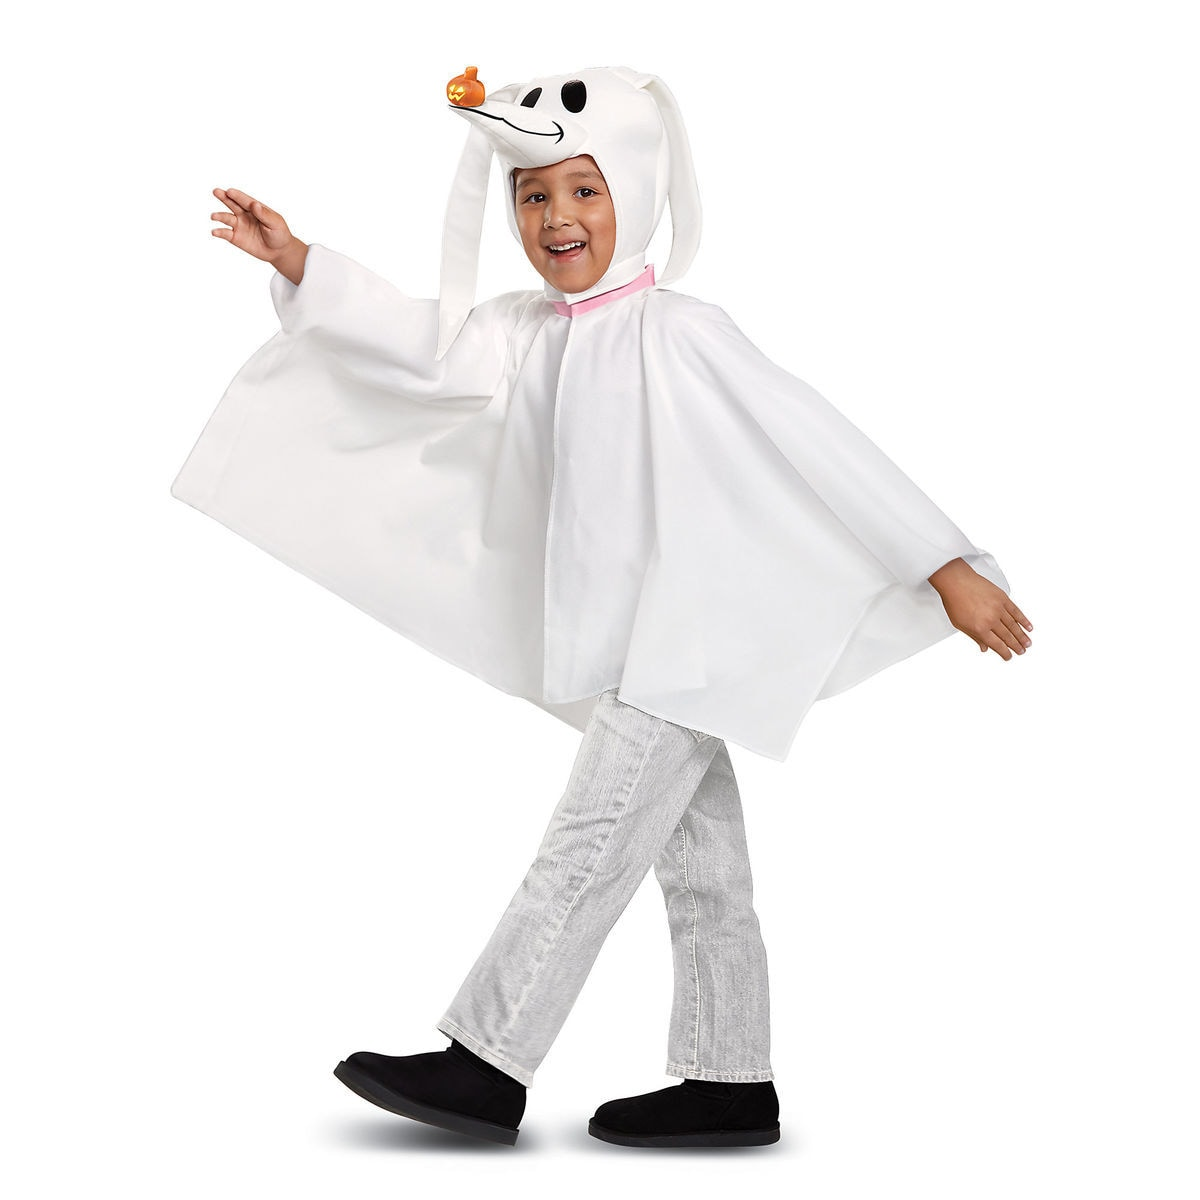 Zero Light-Up Costume for Kids by Disguise - The Nightmare Before Christmas